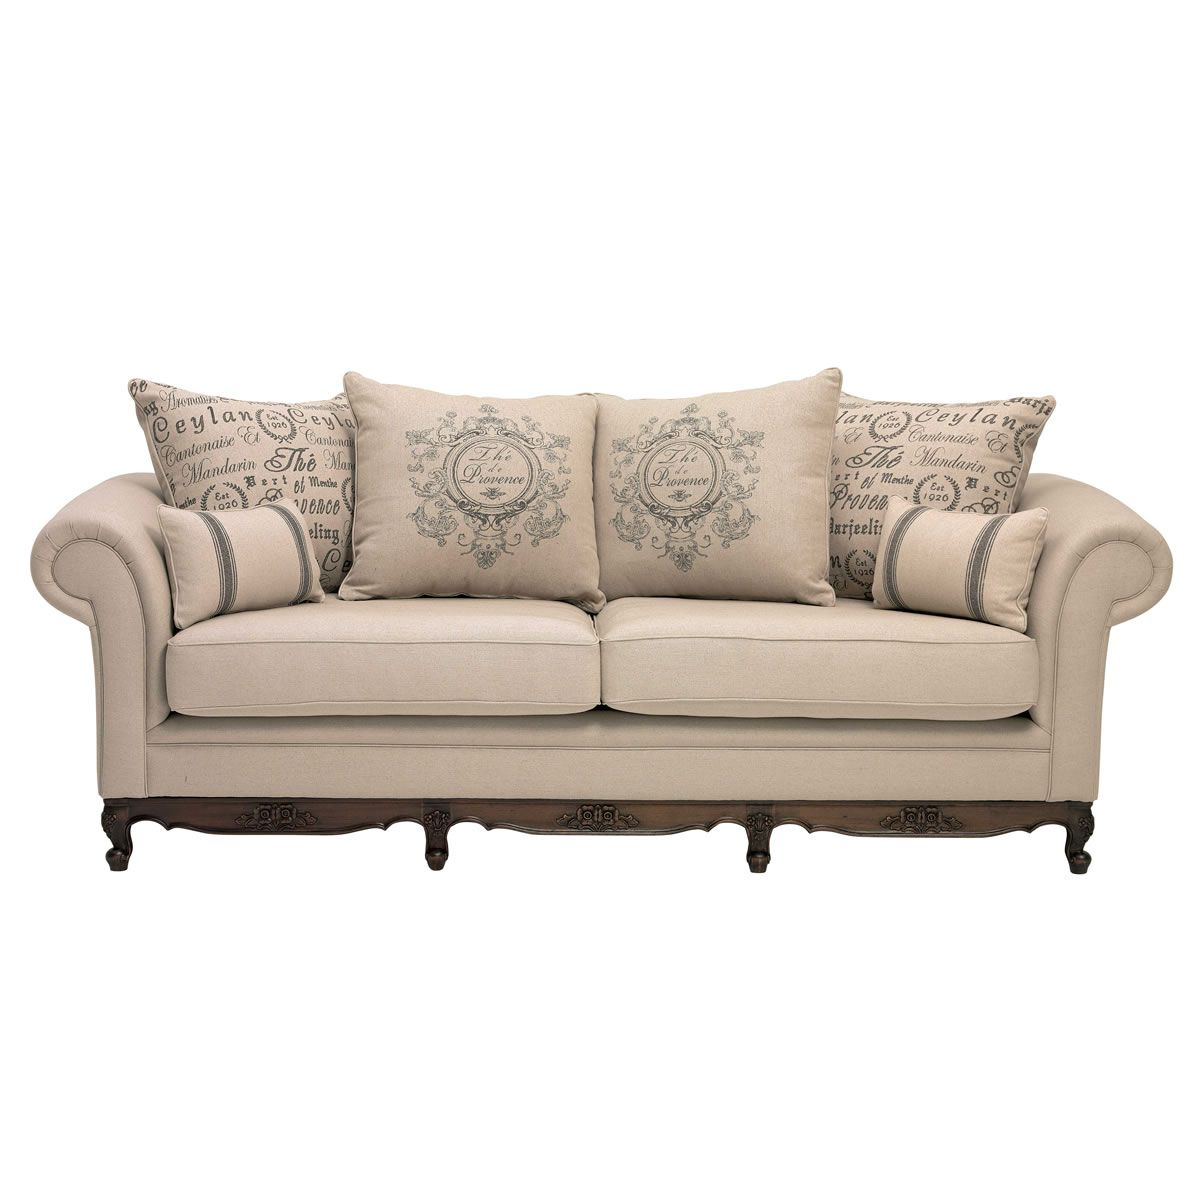 Domayne Furniture Fabric Lounges Provence 3 Seater Sofa From Domayne Have I Finally Found My